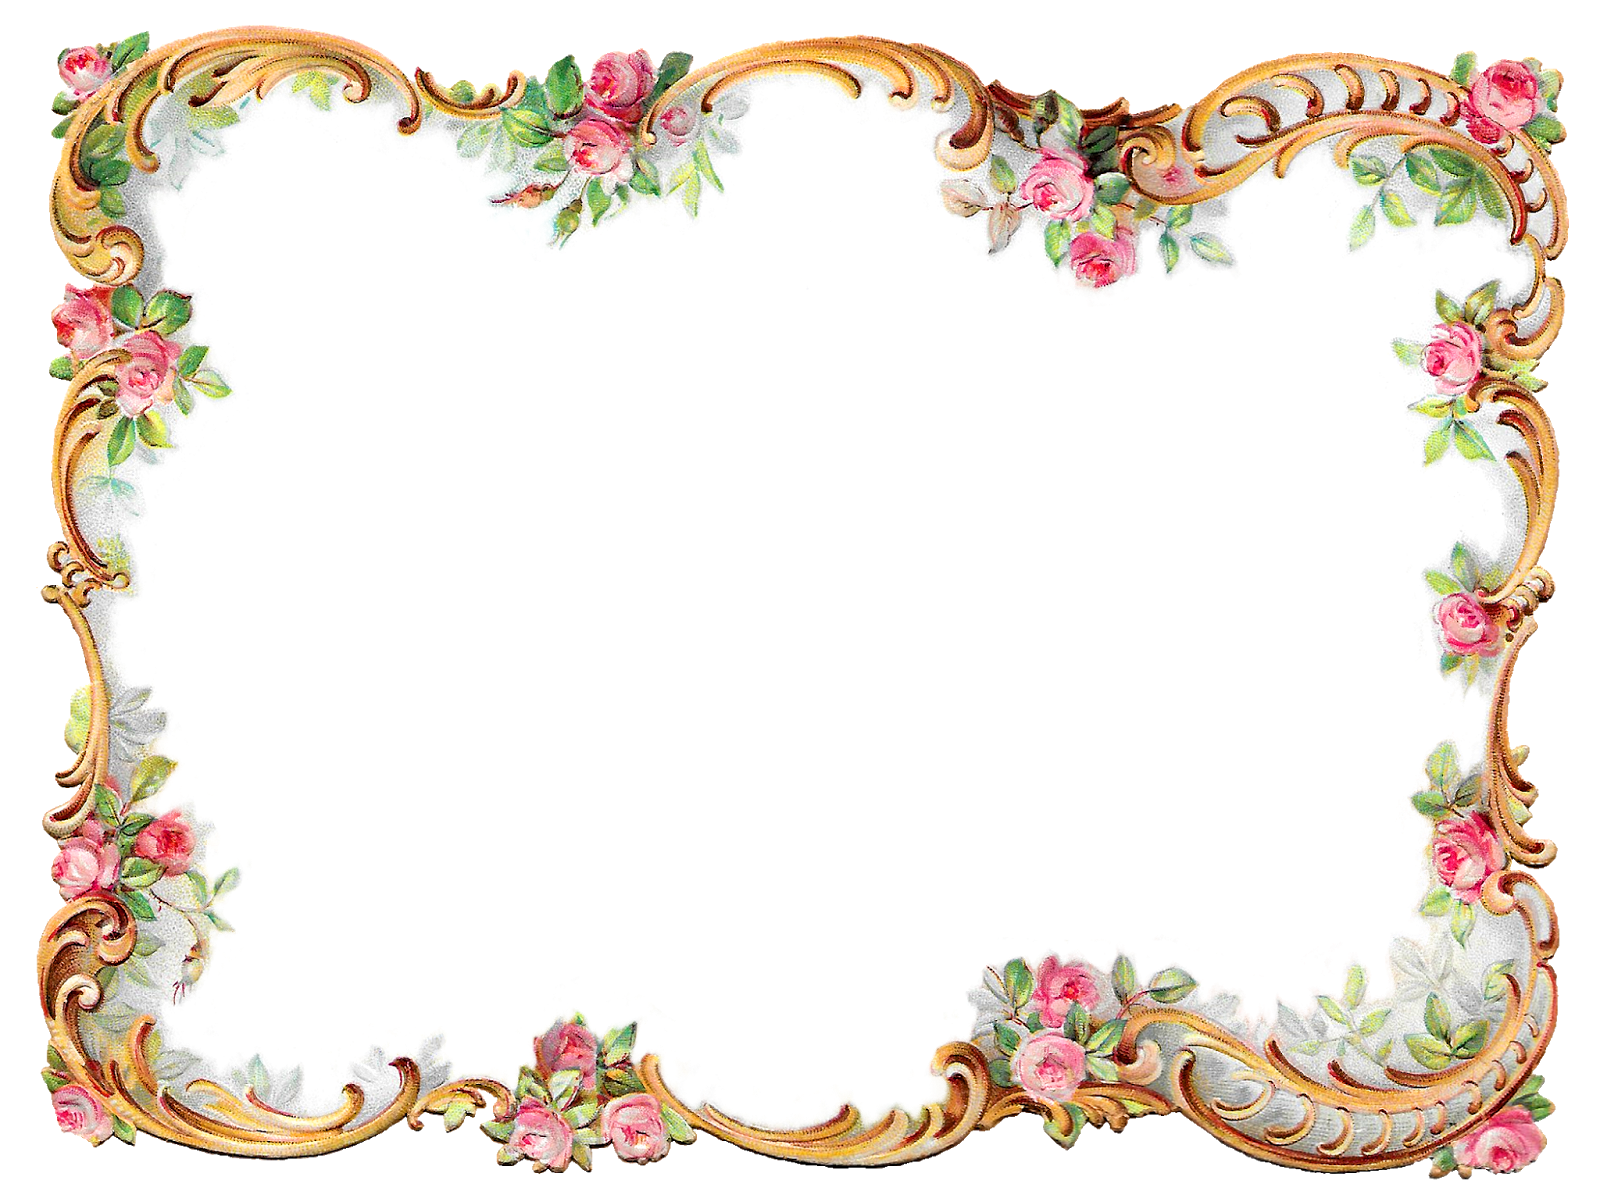 Antique images royalty free. Design clipart scrapbook